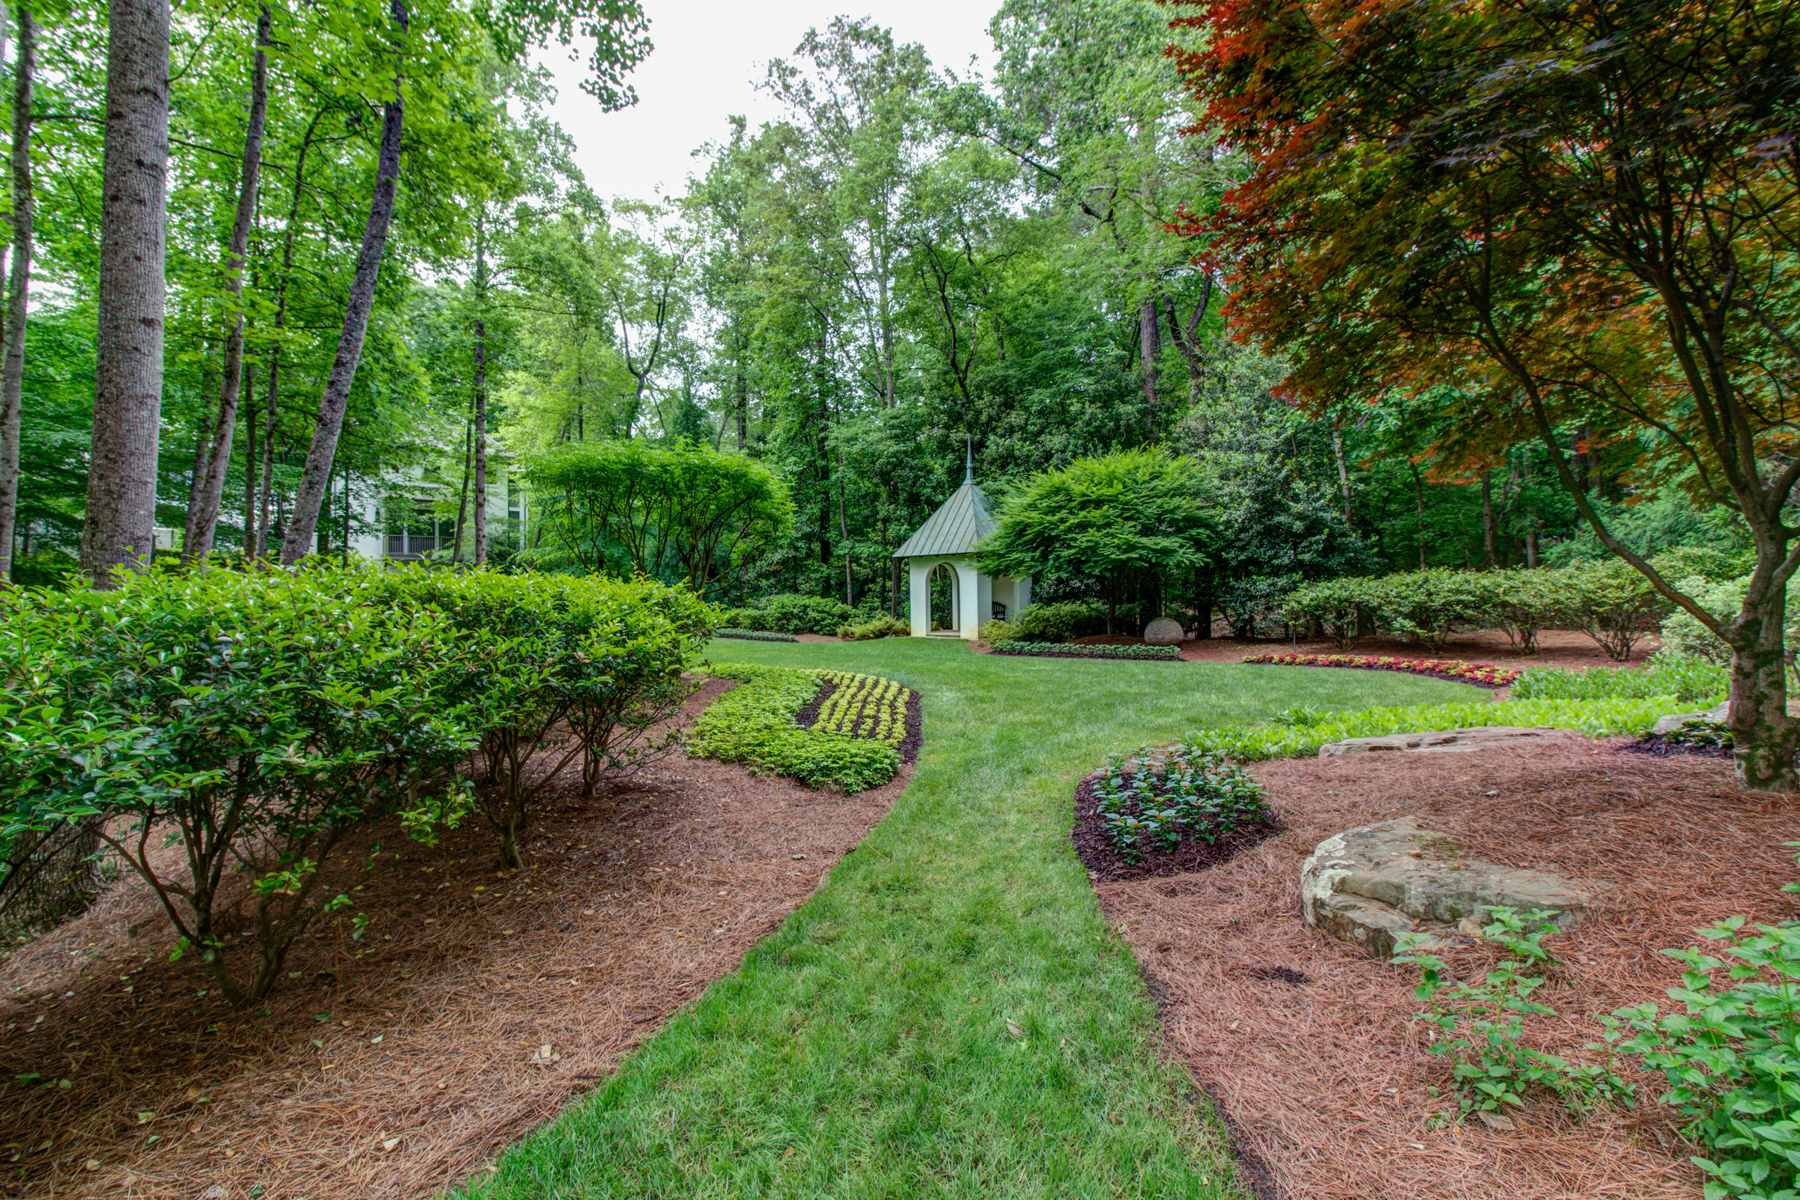 Additional photo for property listing at Captivating European Private Gated Estate 5229 Riverview Road NW Atlanta, Georgia 30327 Hoa Kỳ